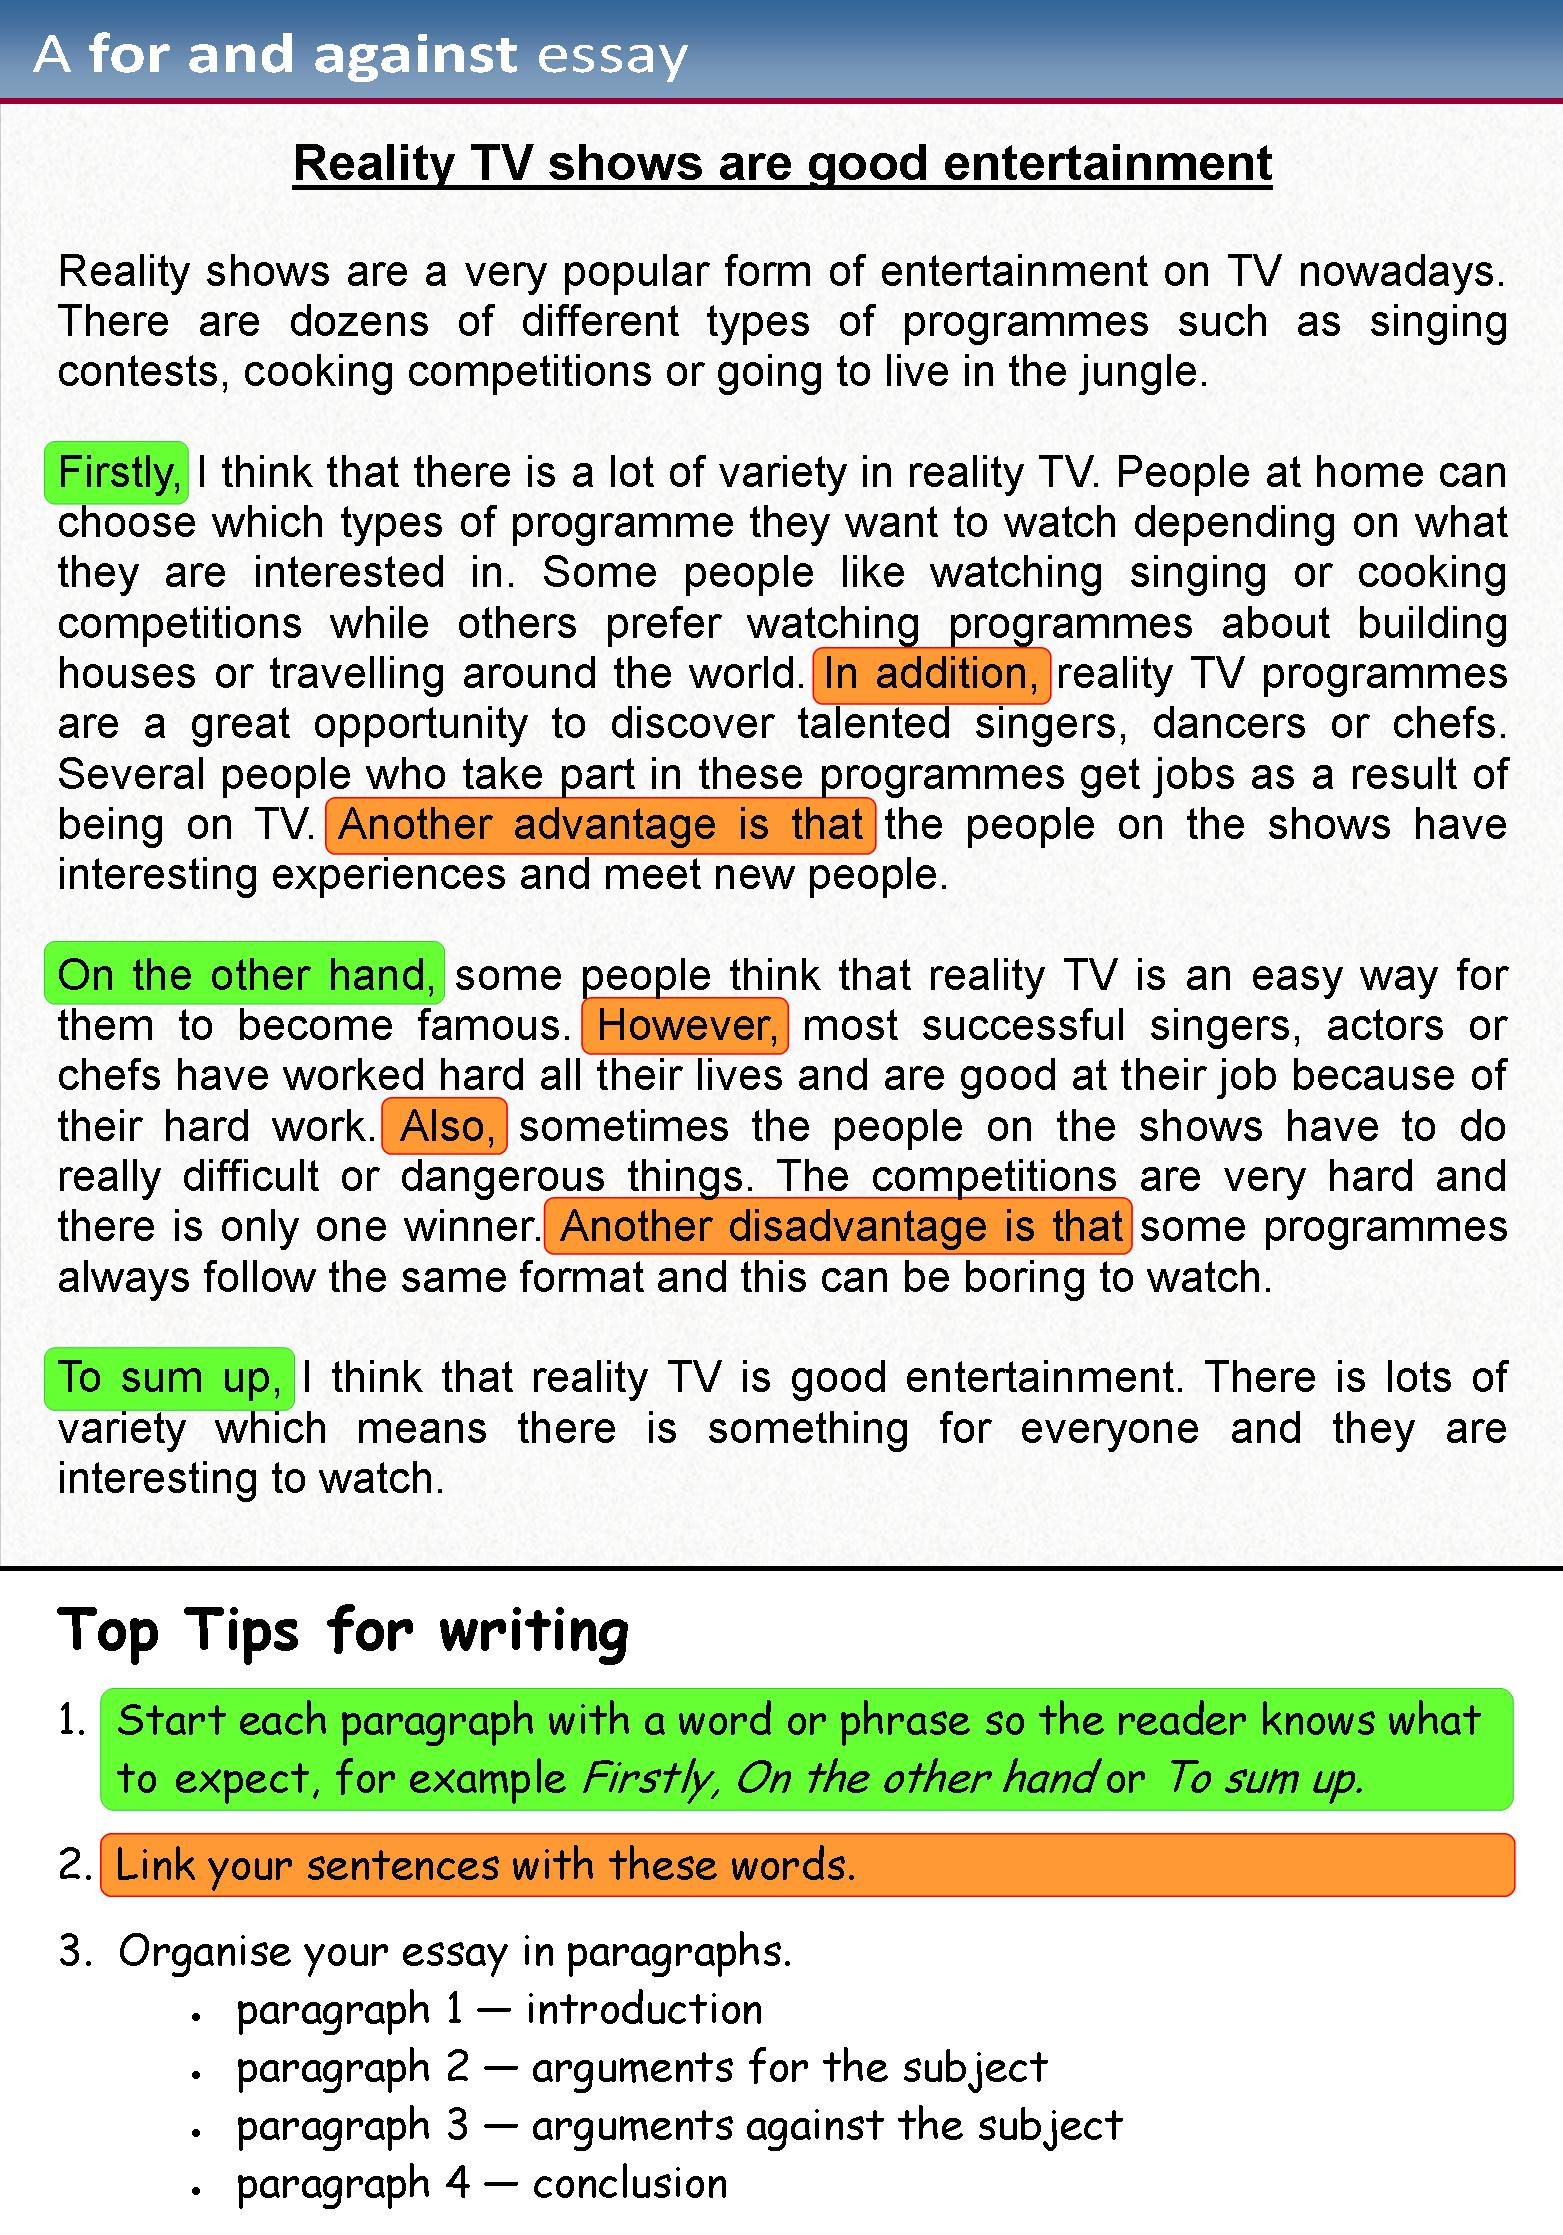 027 How Many Sentences Are In Essay For Against 1 Best A 5 Paragraph Short Full